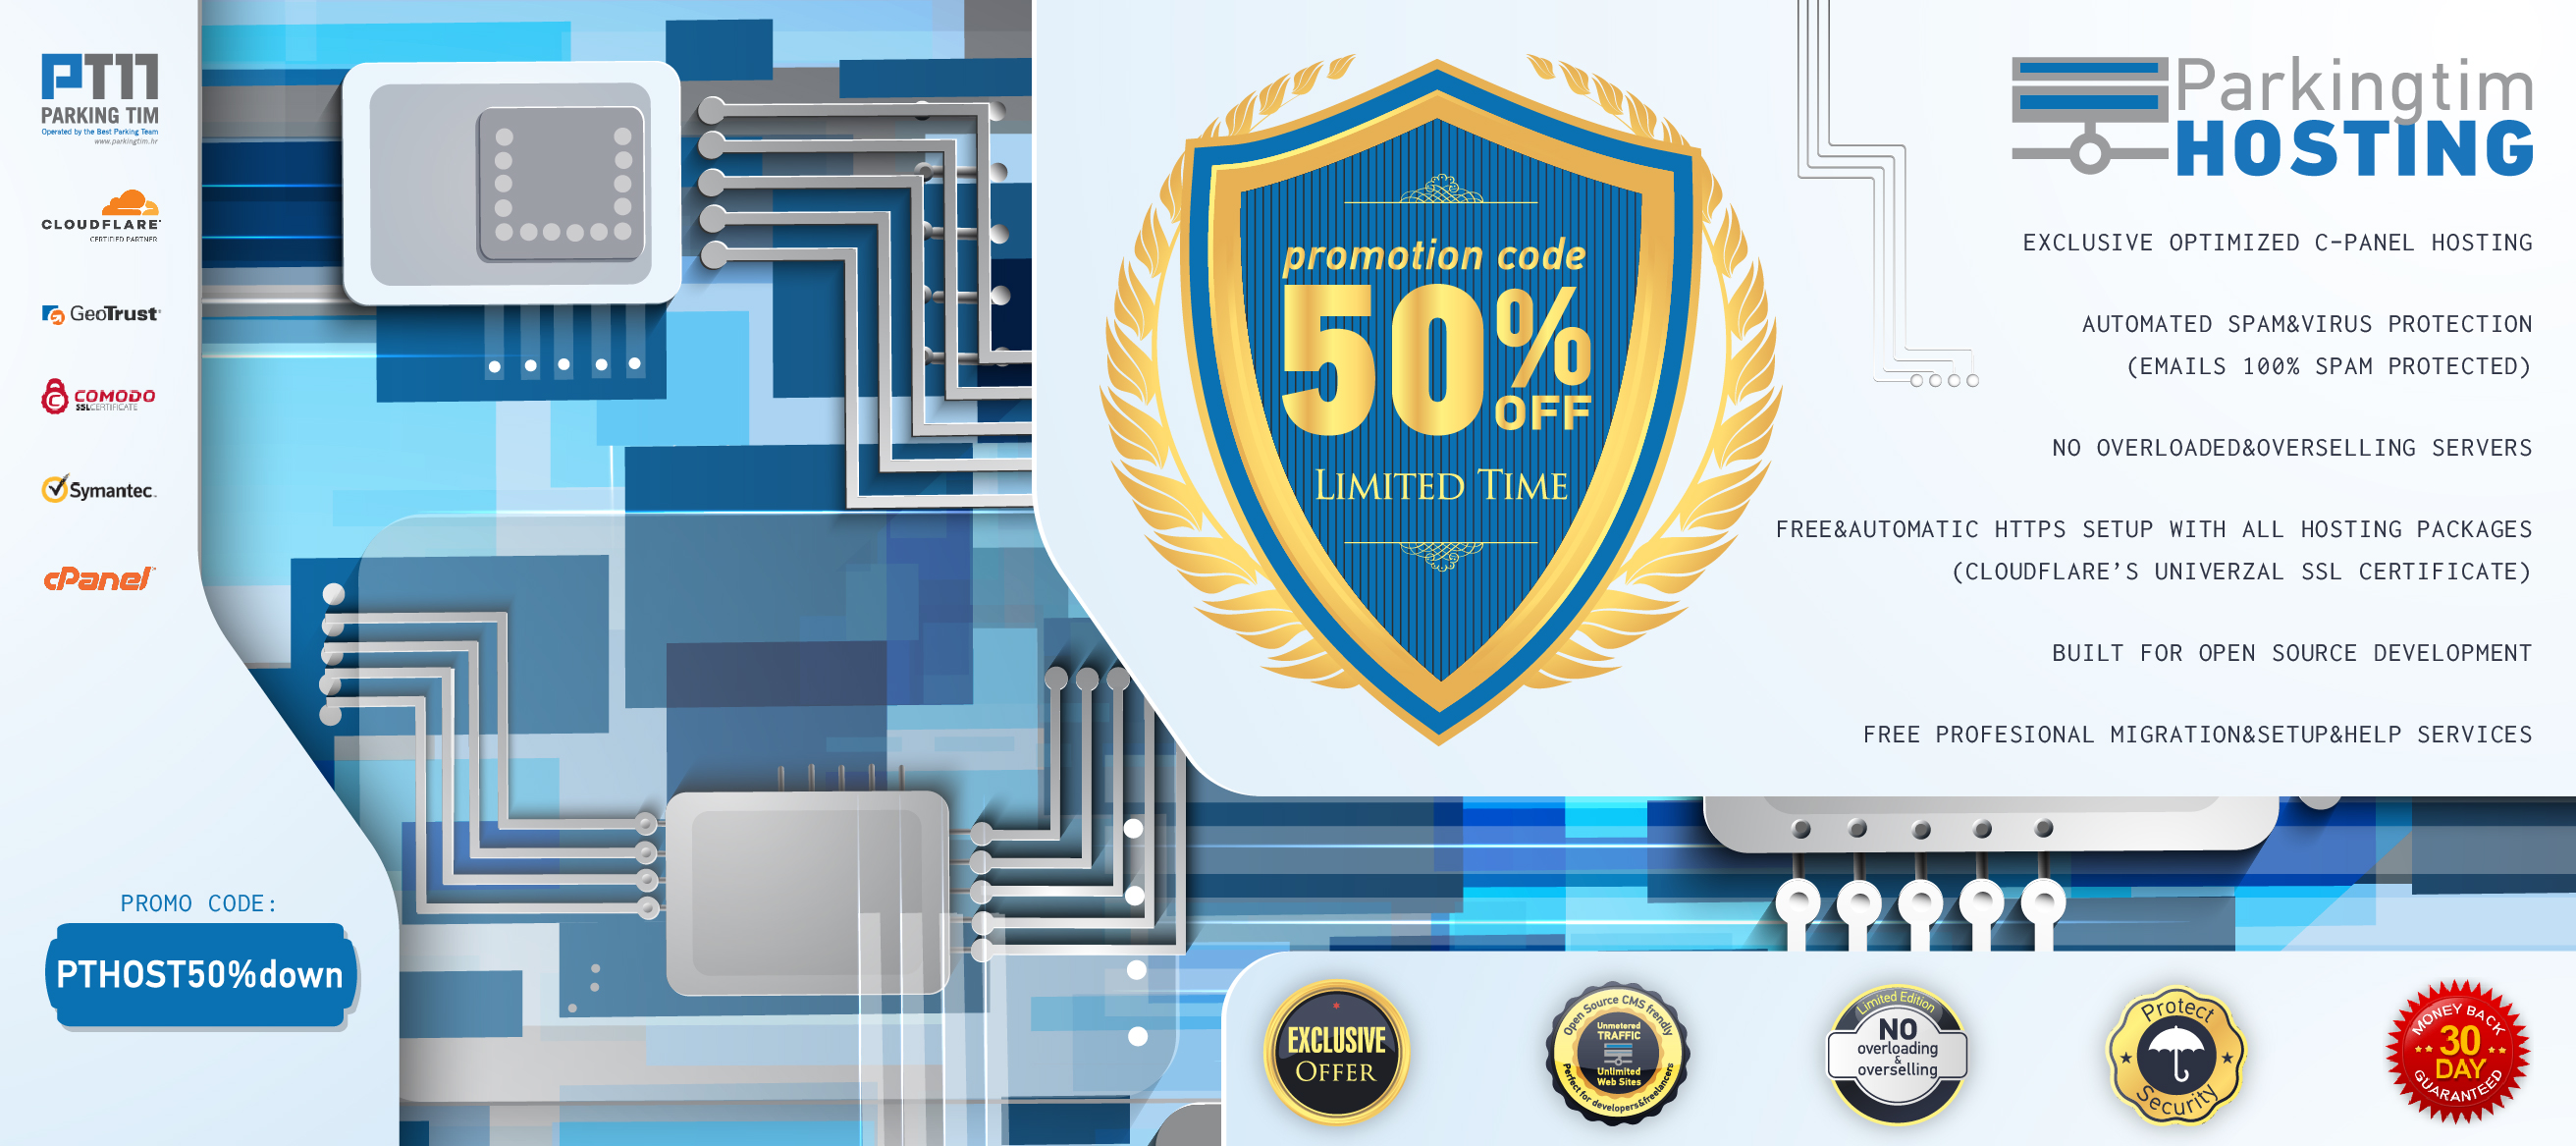 GET Exclusive Coupon Codes 50% Off on all annually hosting plans from Parkingtim-hosting.com